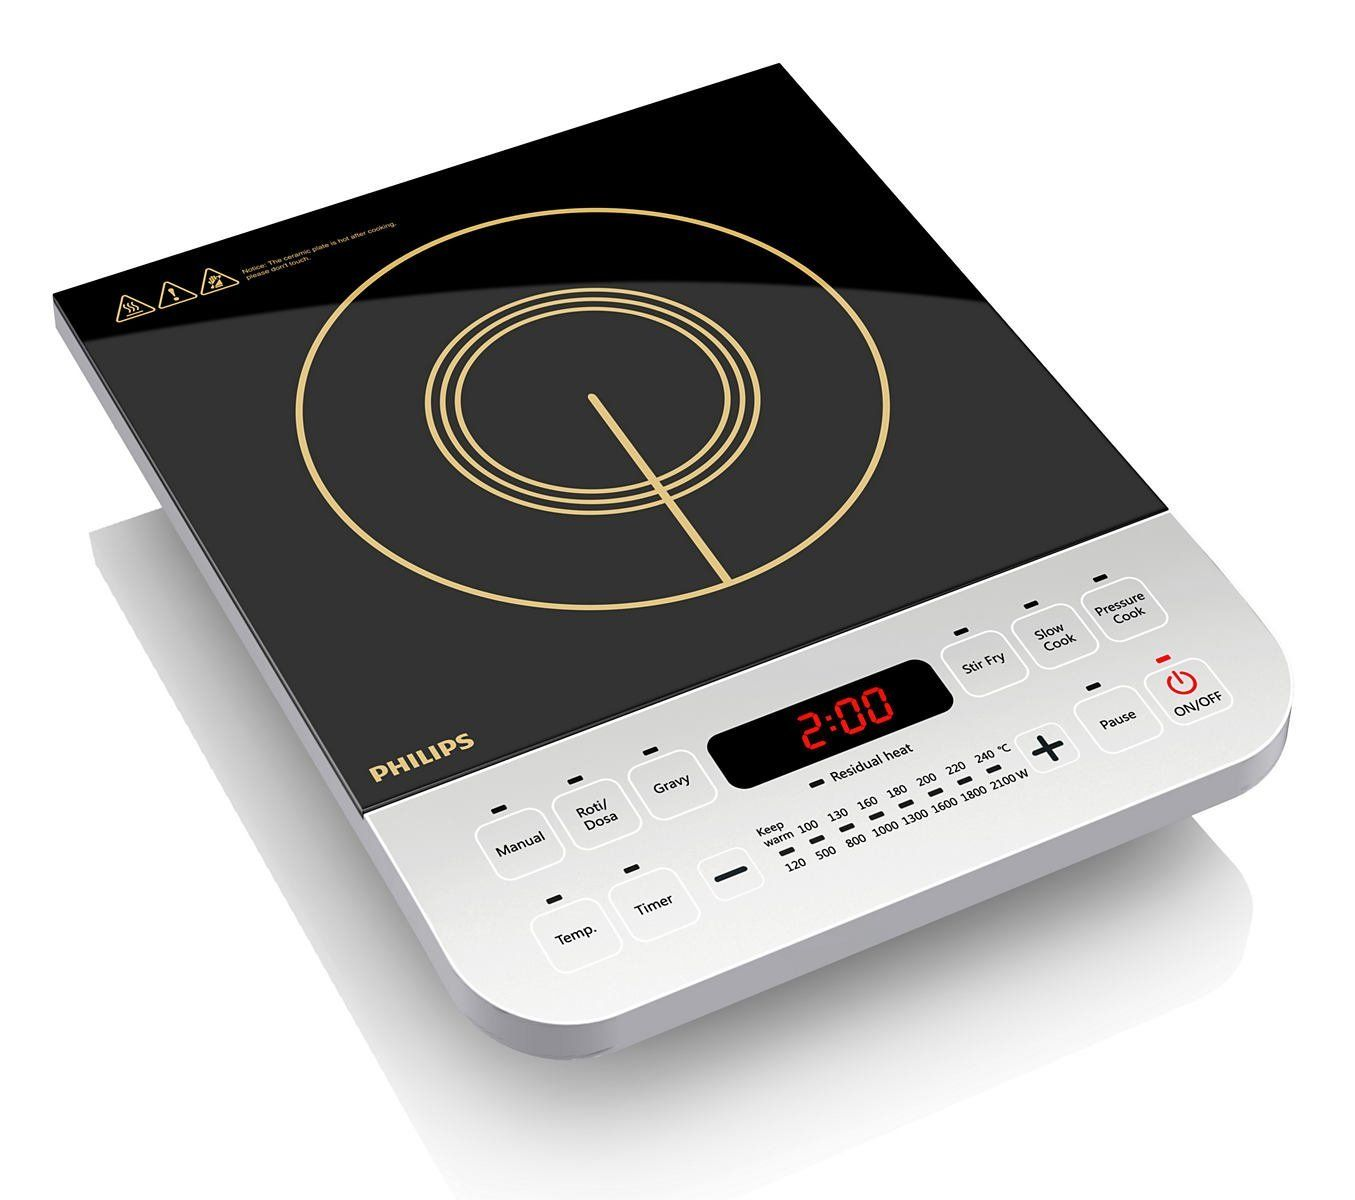 Best Rated Induction Ranges 2020 Philips Viva Collection HD4928 2100 Watt Induction Cooktop (Black